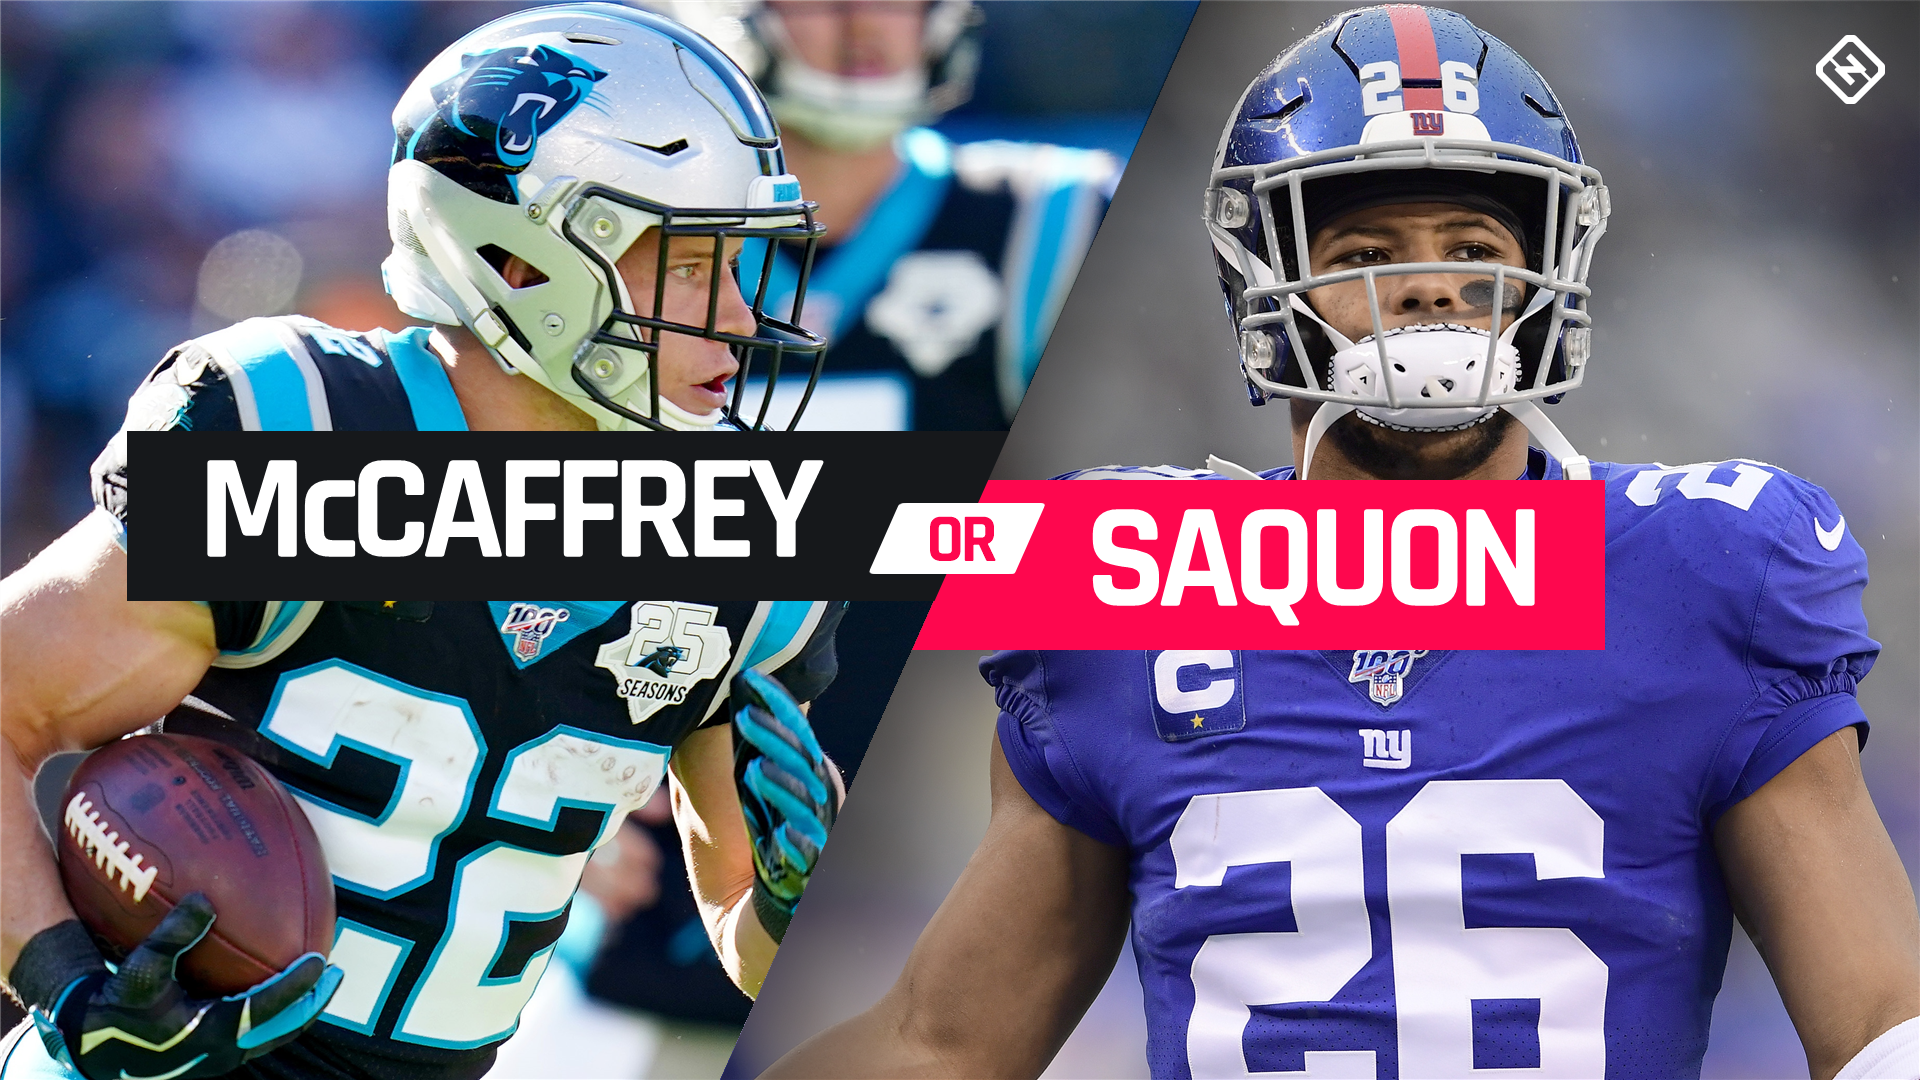 Christian McCaffrey vs. Saquon Barkley: Which top-tier RB should go No. 1 overall in fantasy football? 1